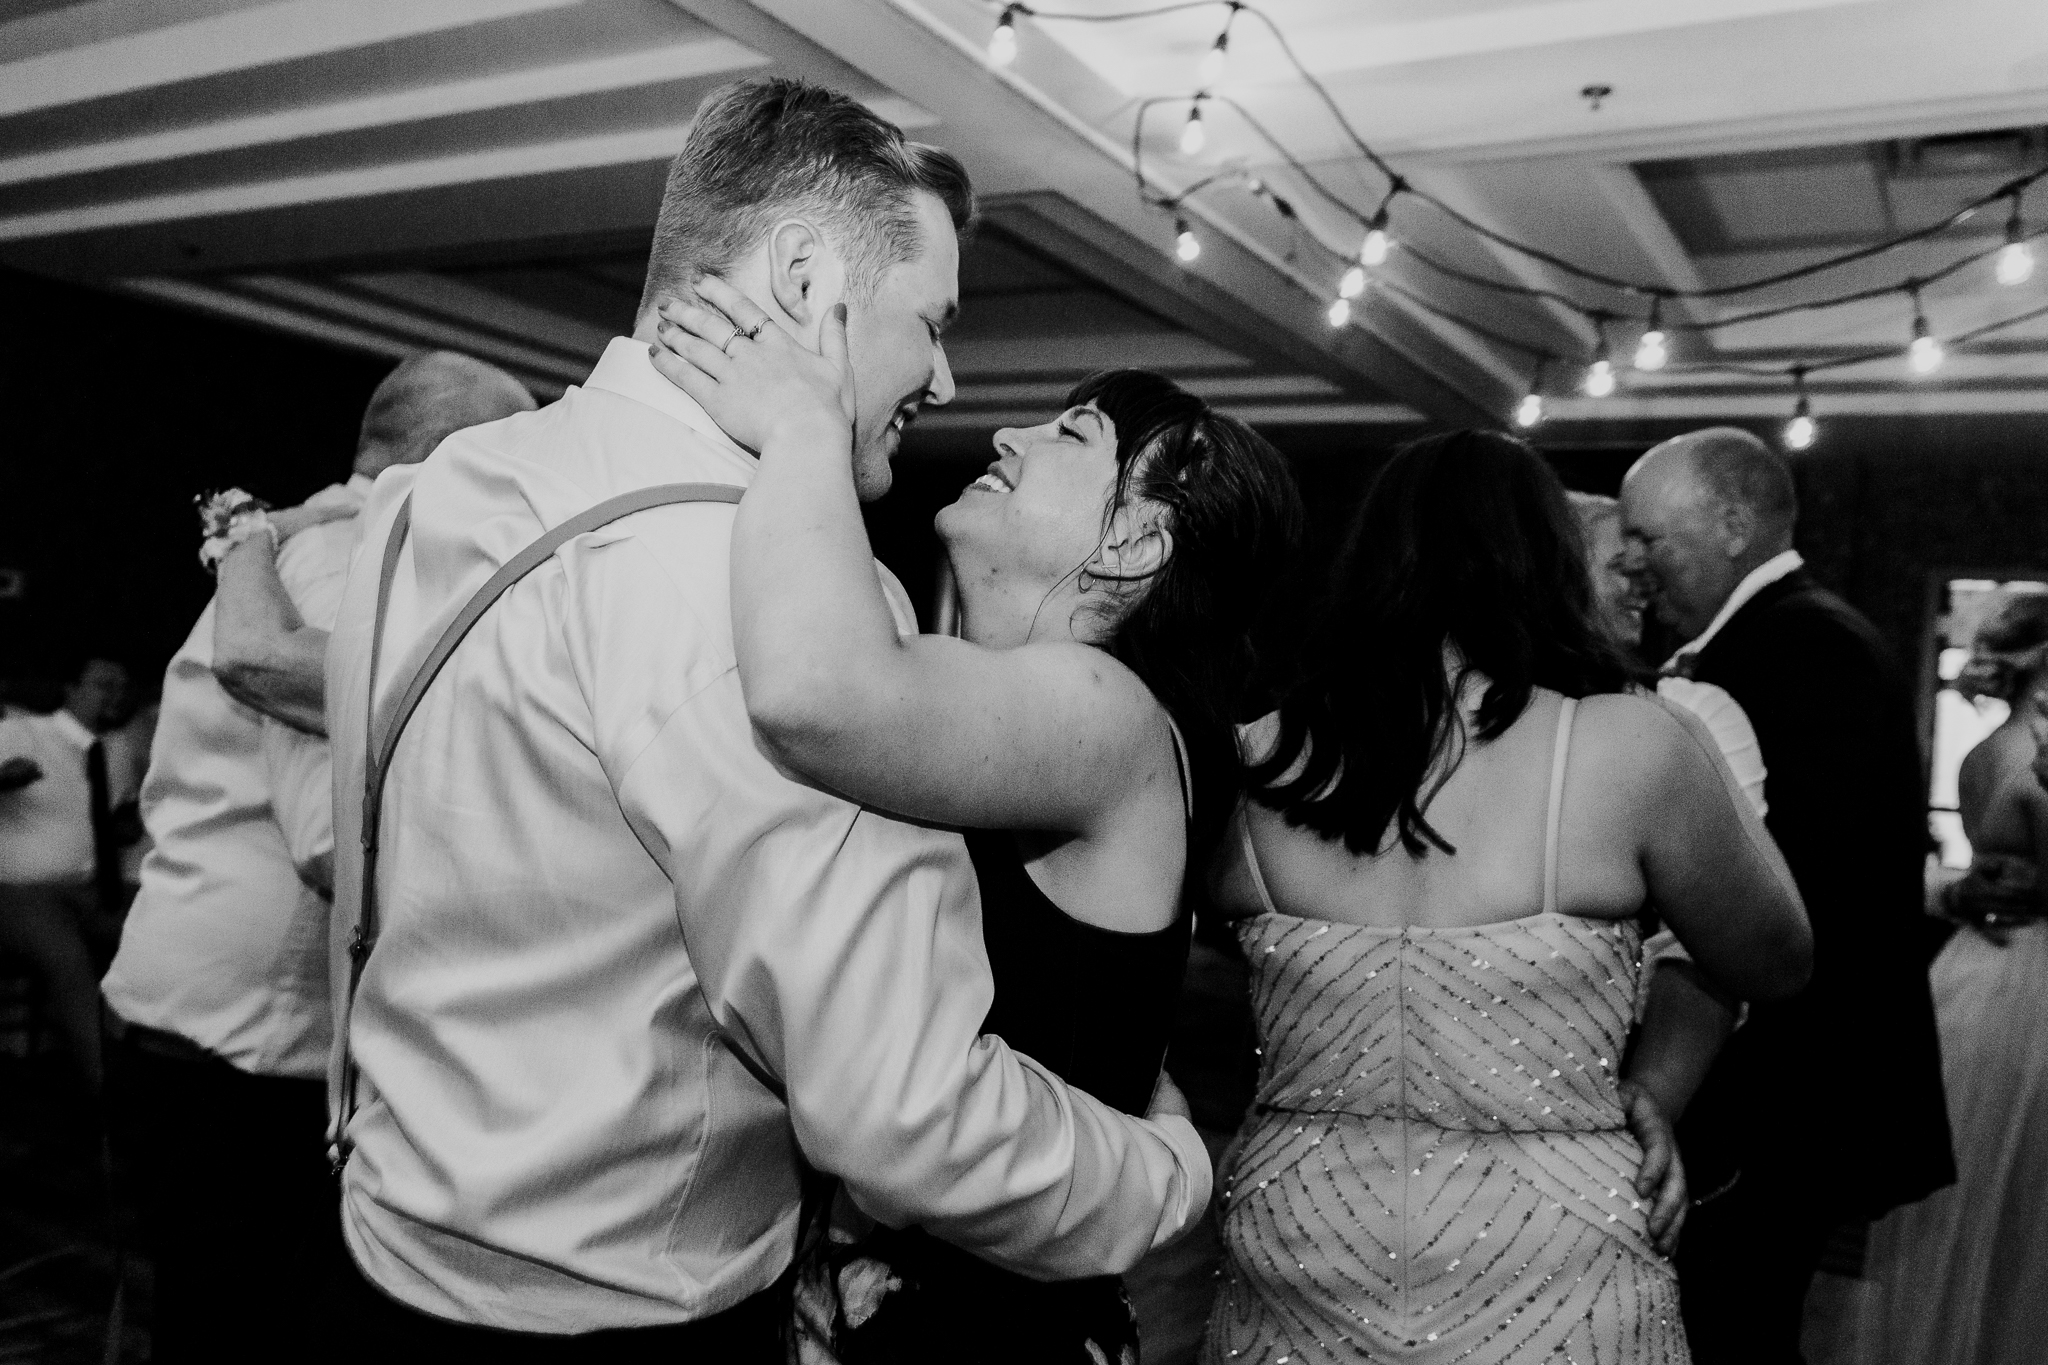 Guests dancing during reception at Delta Kananaskis wedding